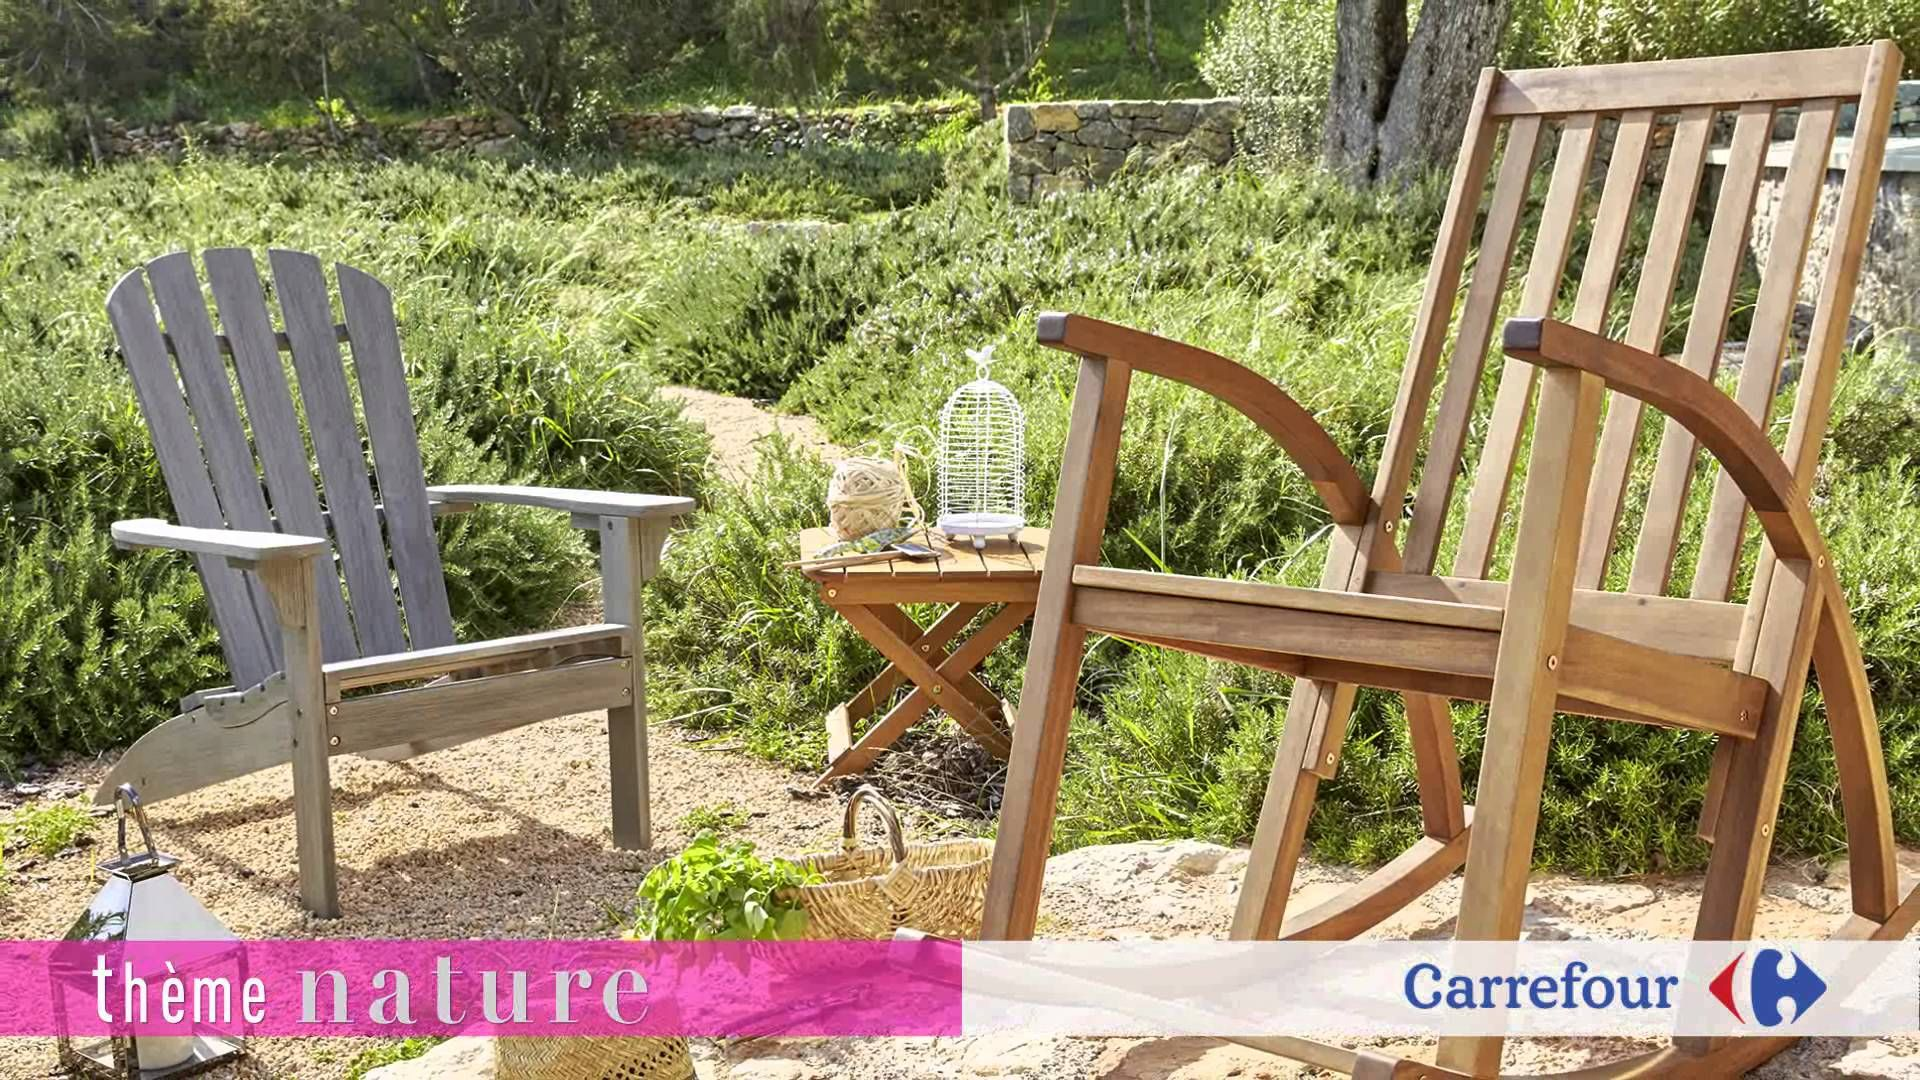 Carrefour Meubles De Jardin Collection De Mobilier De Jardin Hyba Carrefour Ambiances